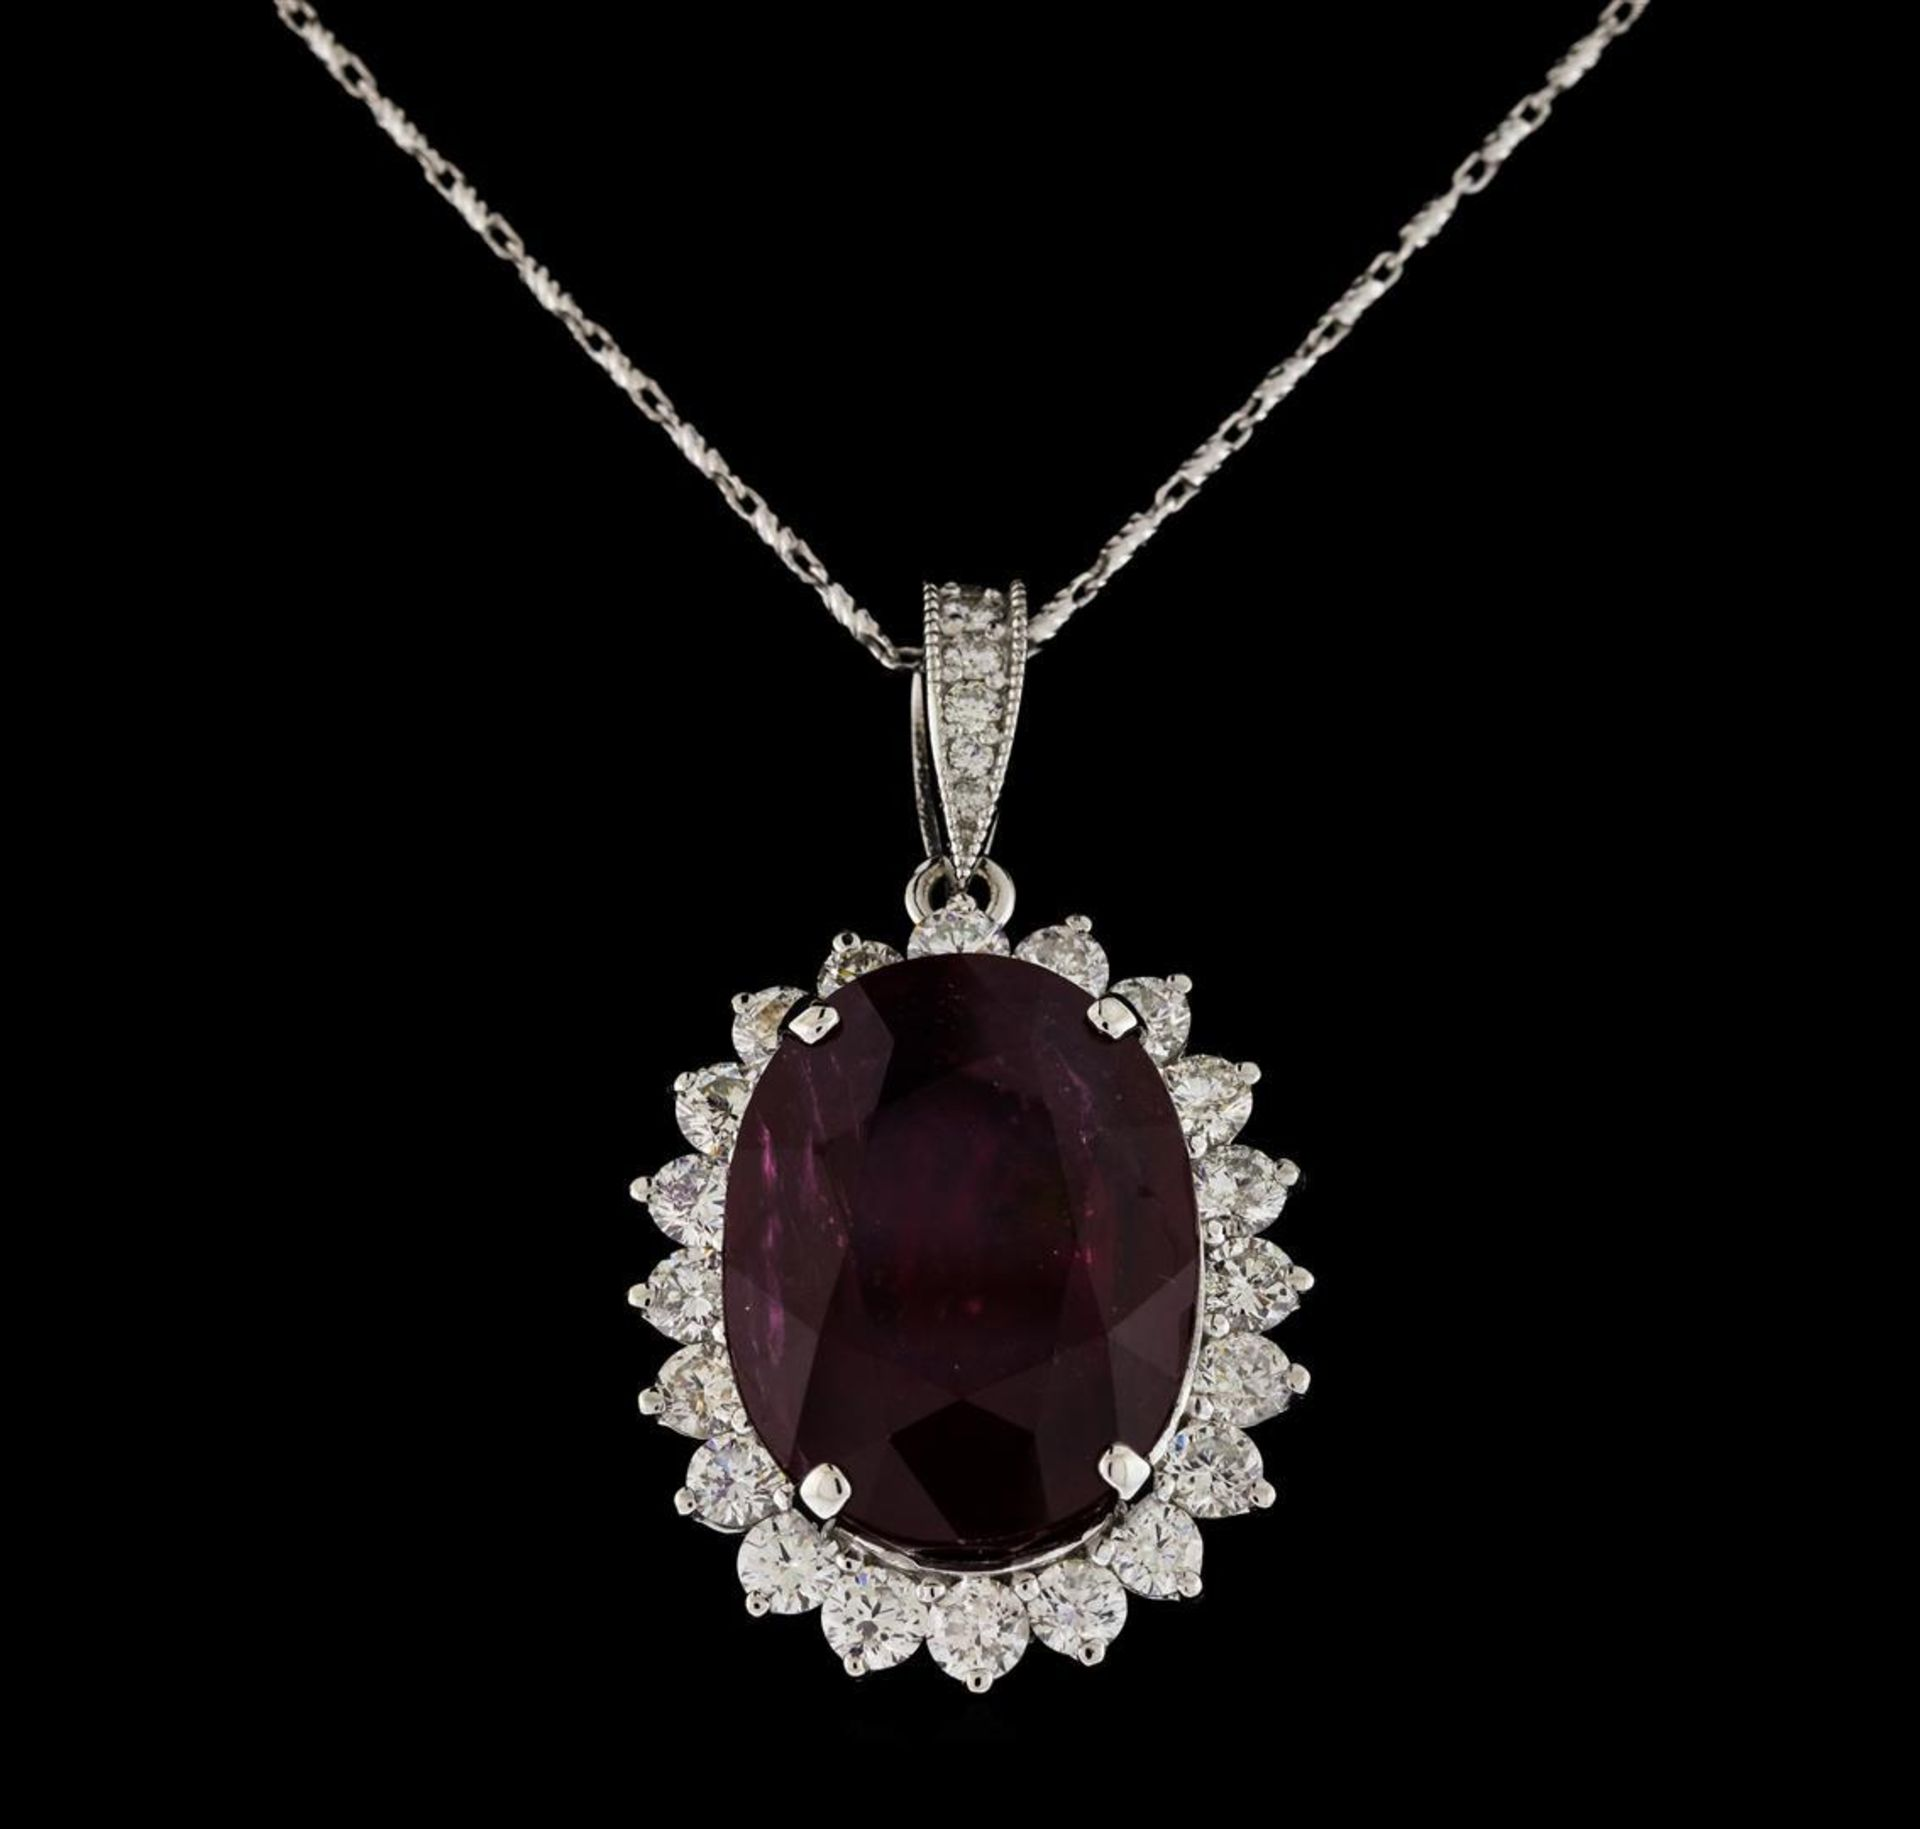 18.81 ctw Ruby and Diamond Pendant With Chain - 14KT White Gold - Image 2 of 3